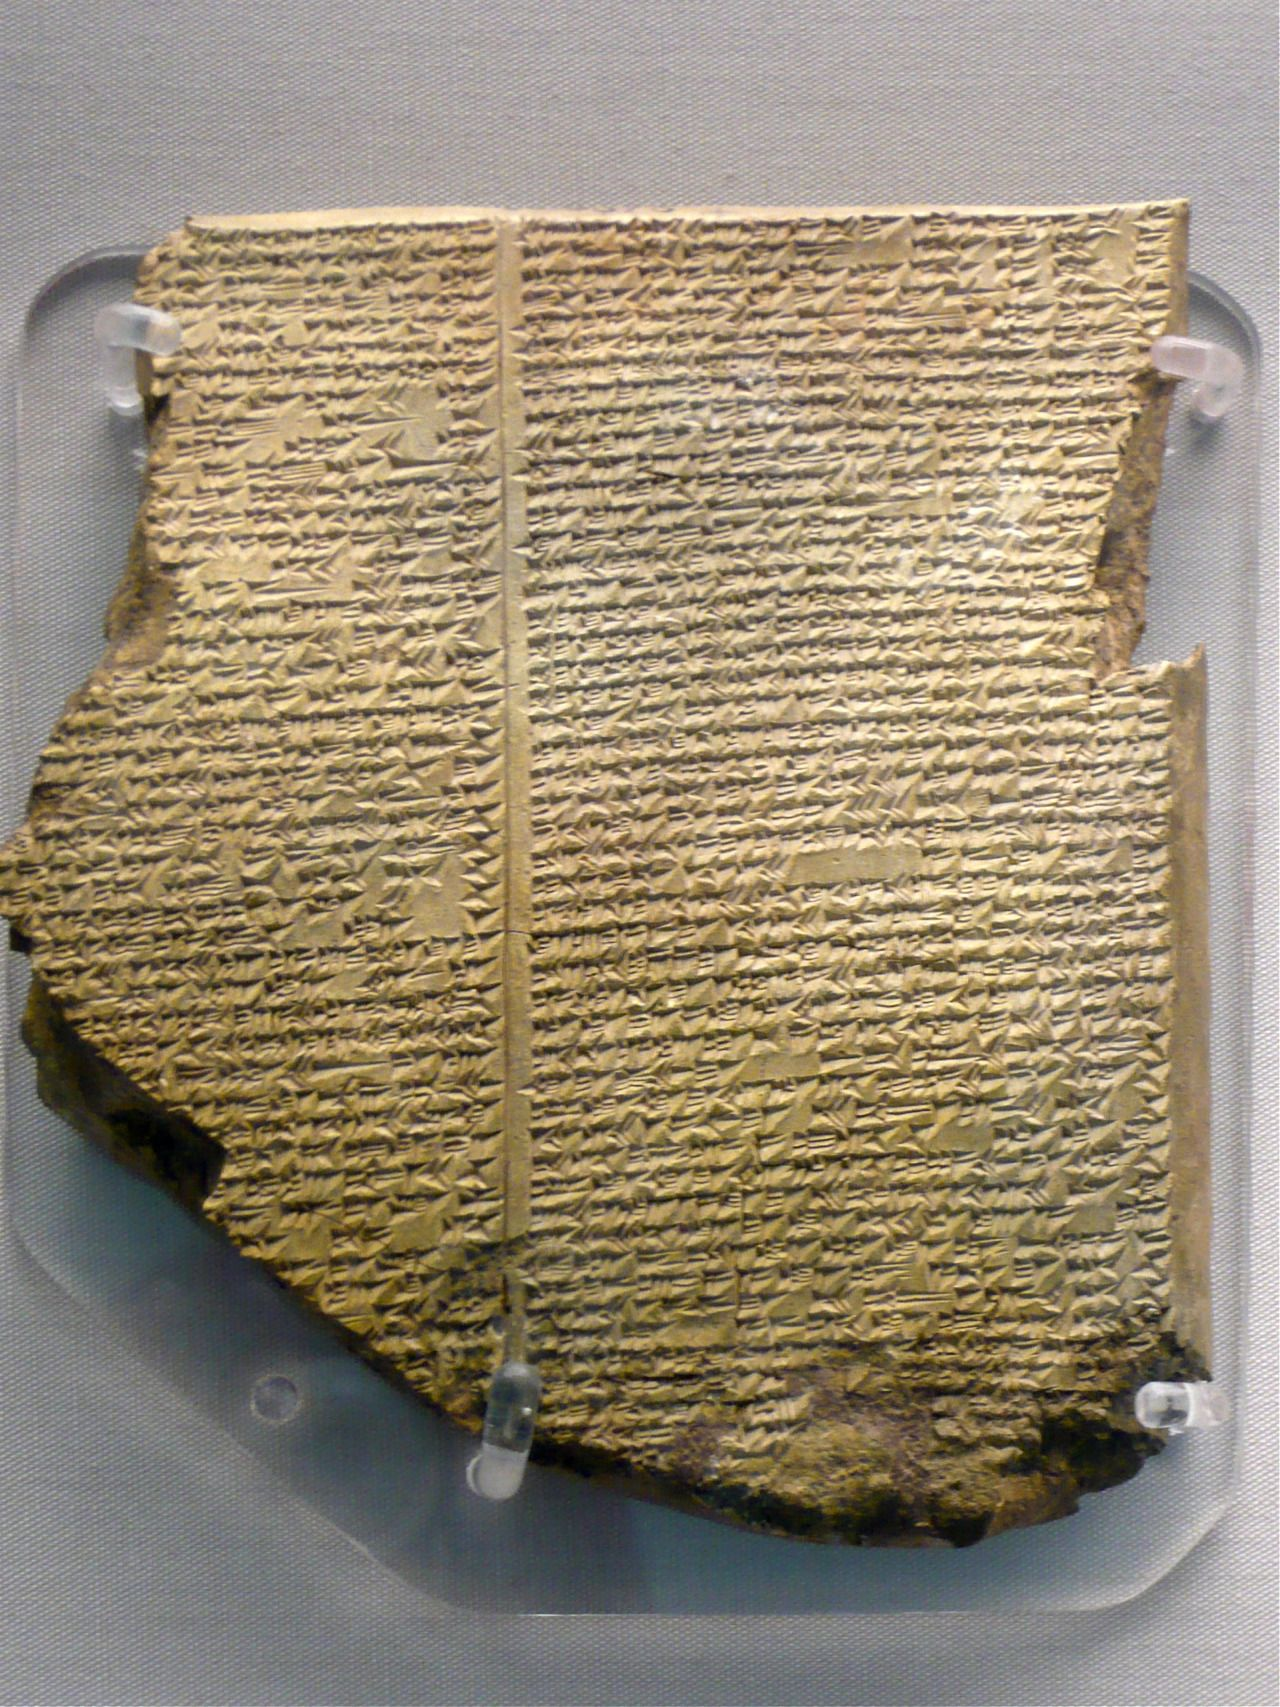 The Most Famous Cuneiform Tablet From Mesopotamia Flood Relating Part Of Epic Gilh Nineveh Northern Iraq Neo Yrian